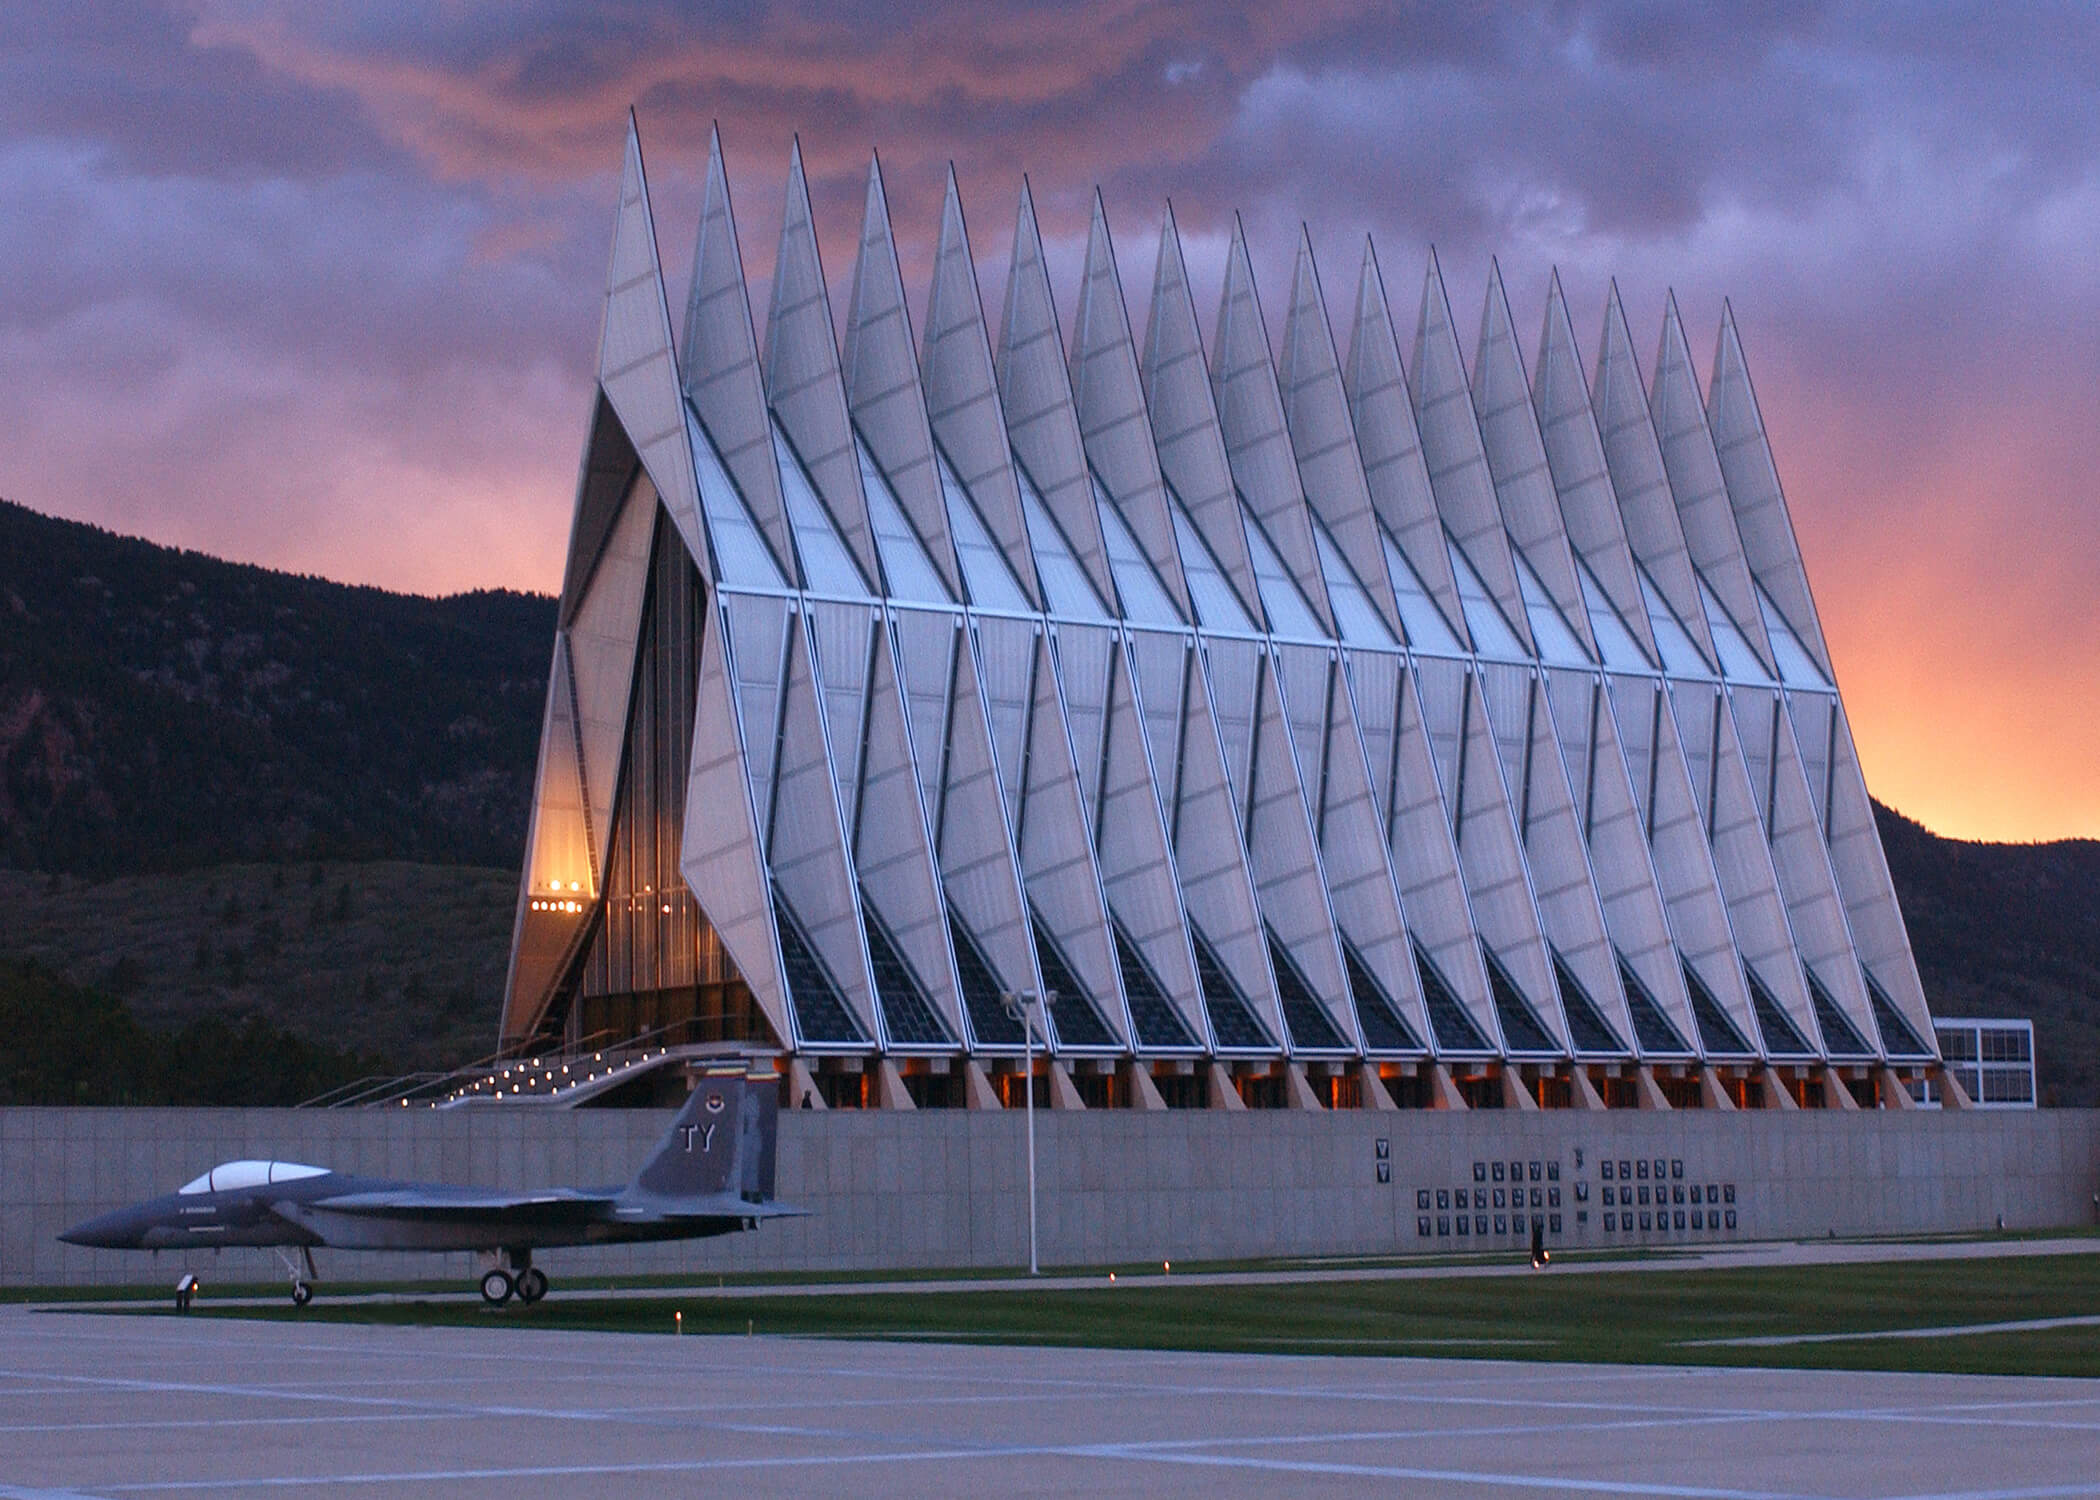 air force academy Air force academy statbroadcast live for fans - upcoming events today's statbroadcast live events there are no events scheduled for today.